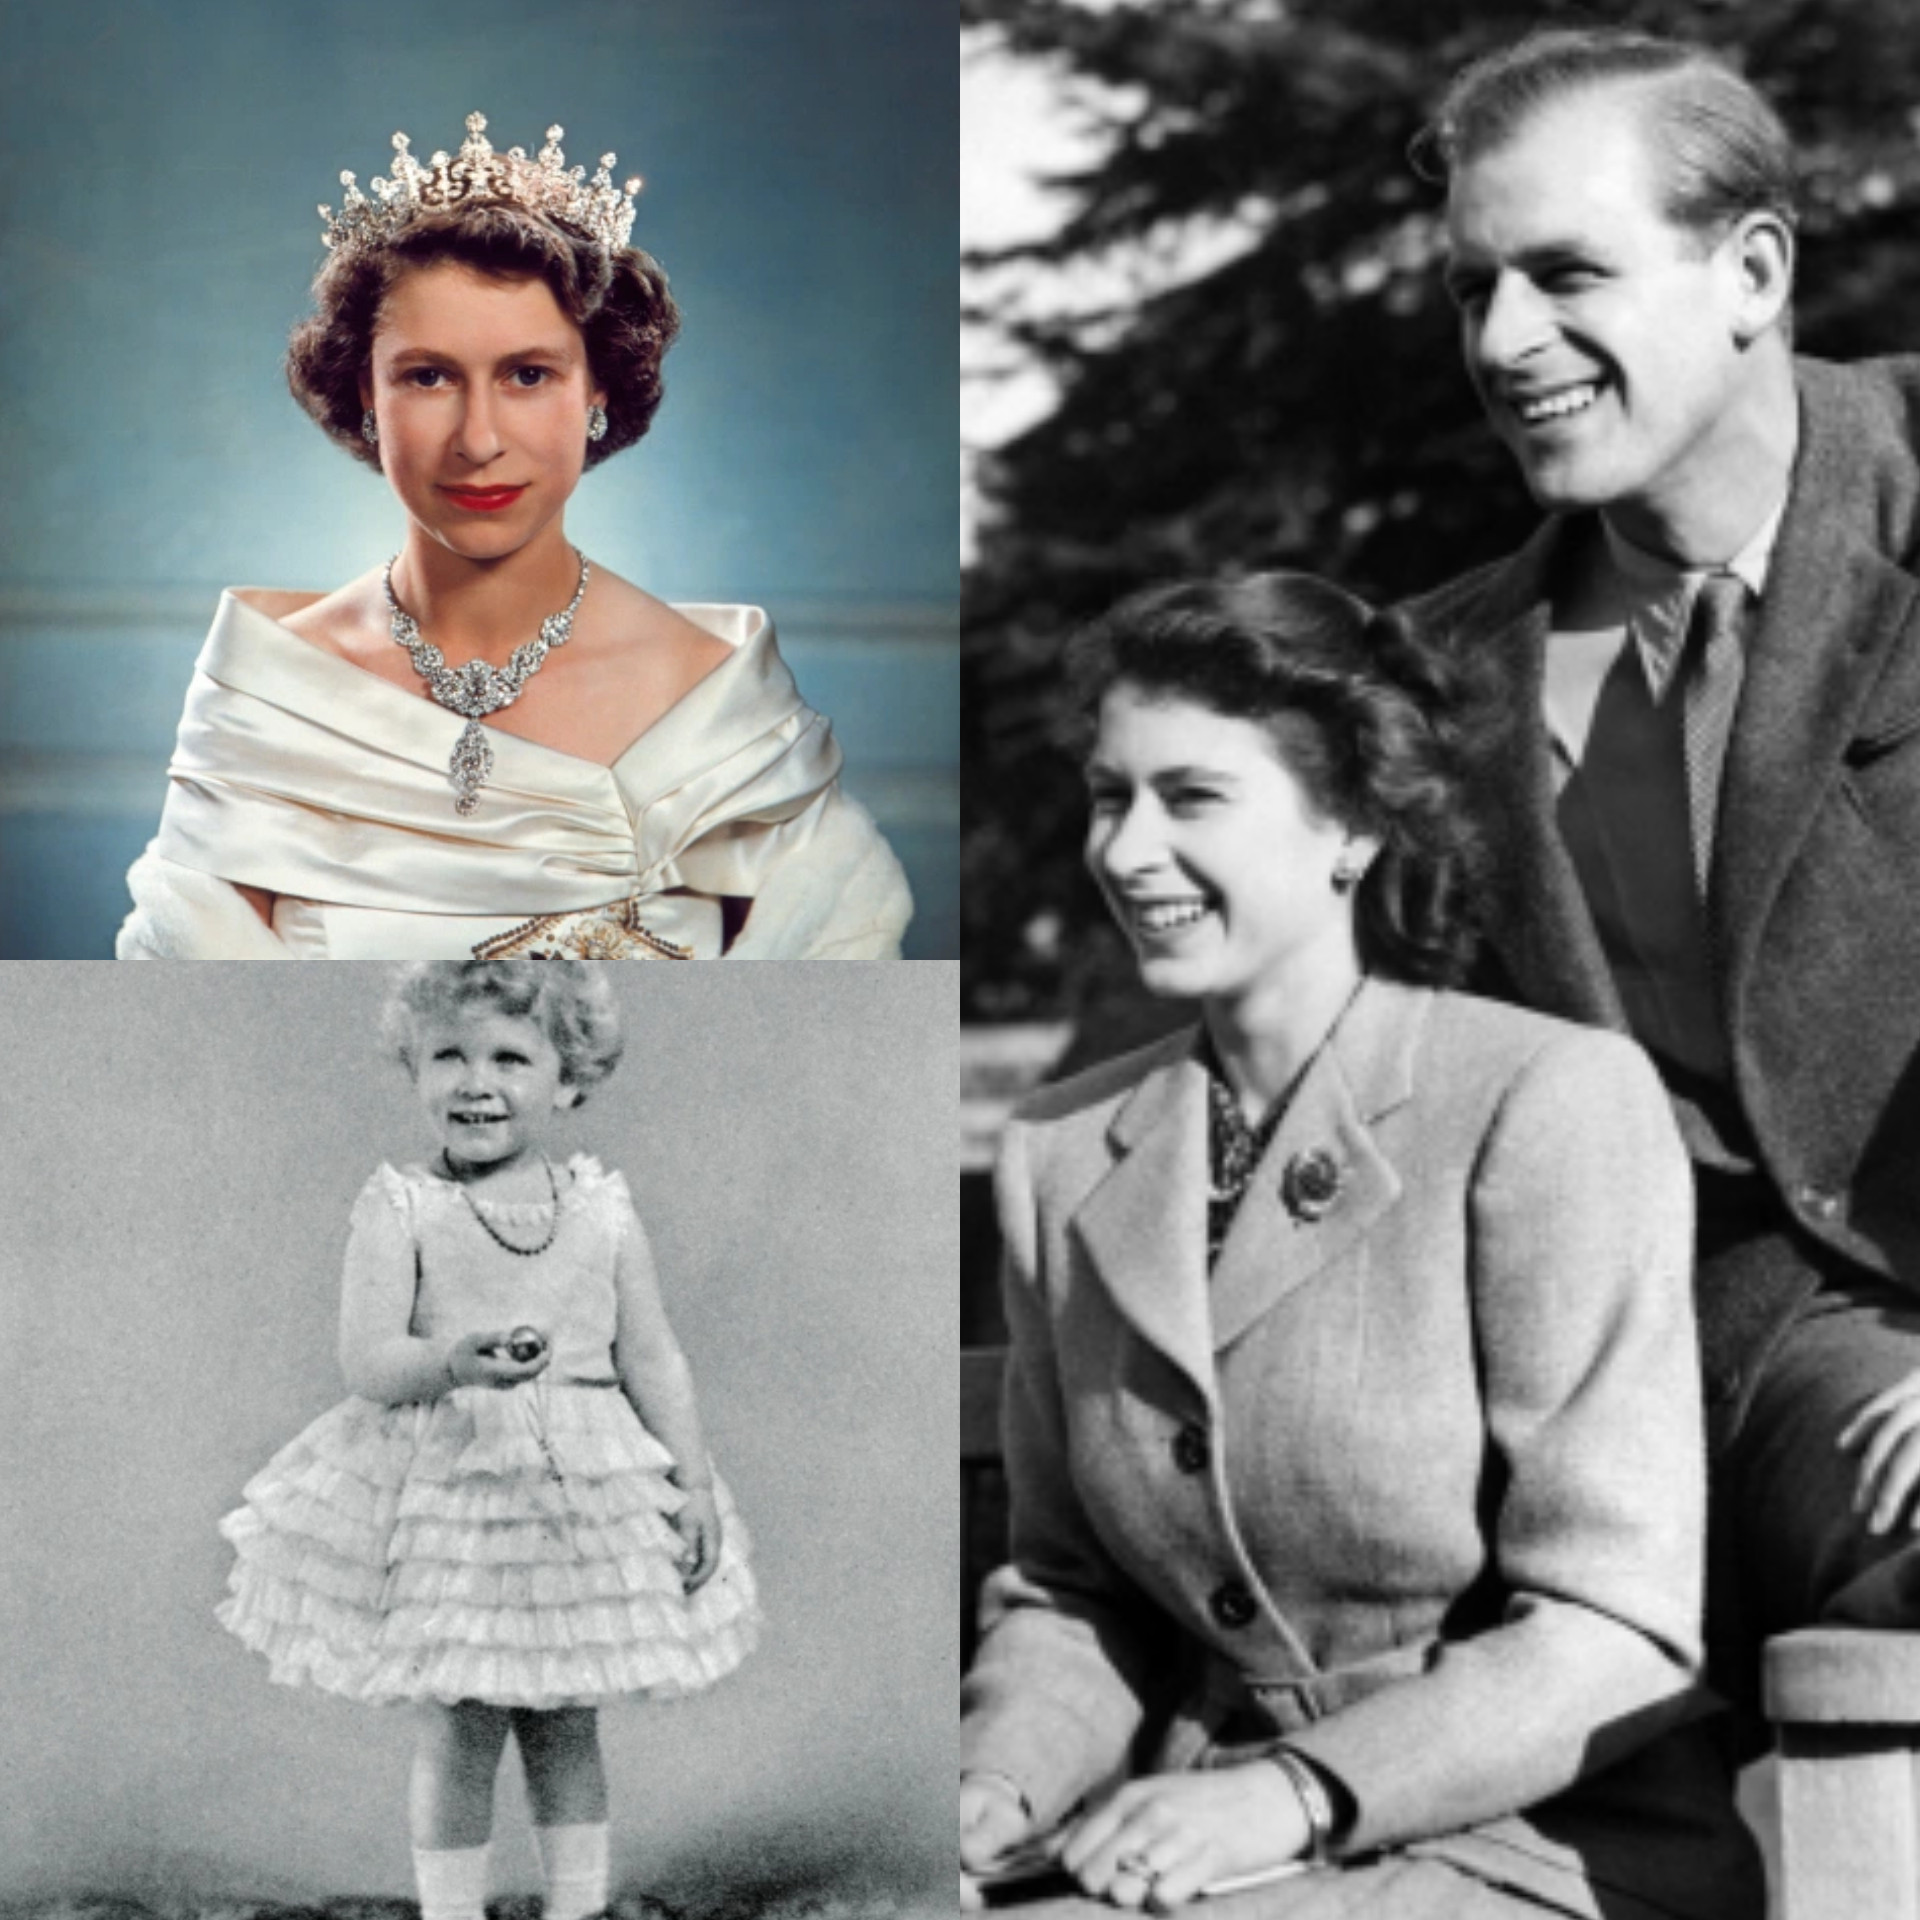 Historical photos of the life and times of Queen Elizabeth II as she turns 95 today